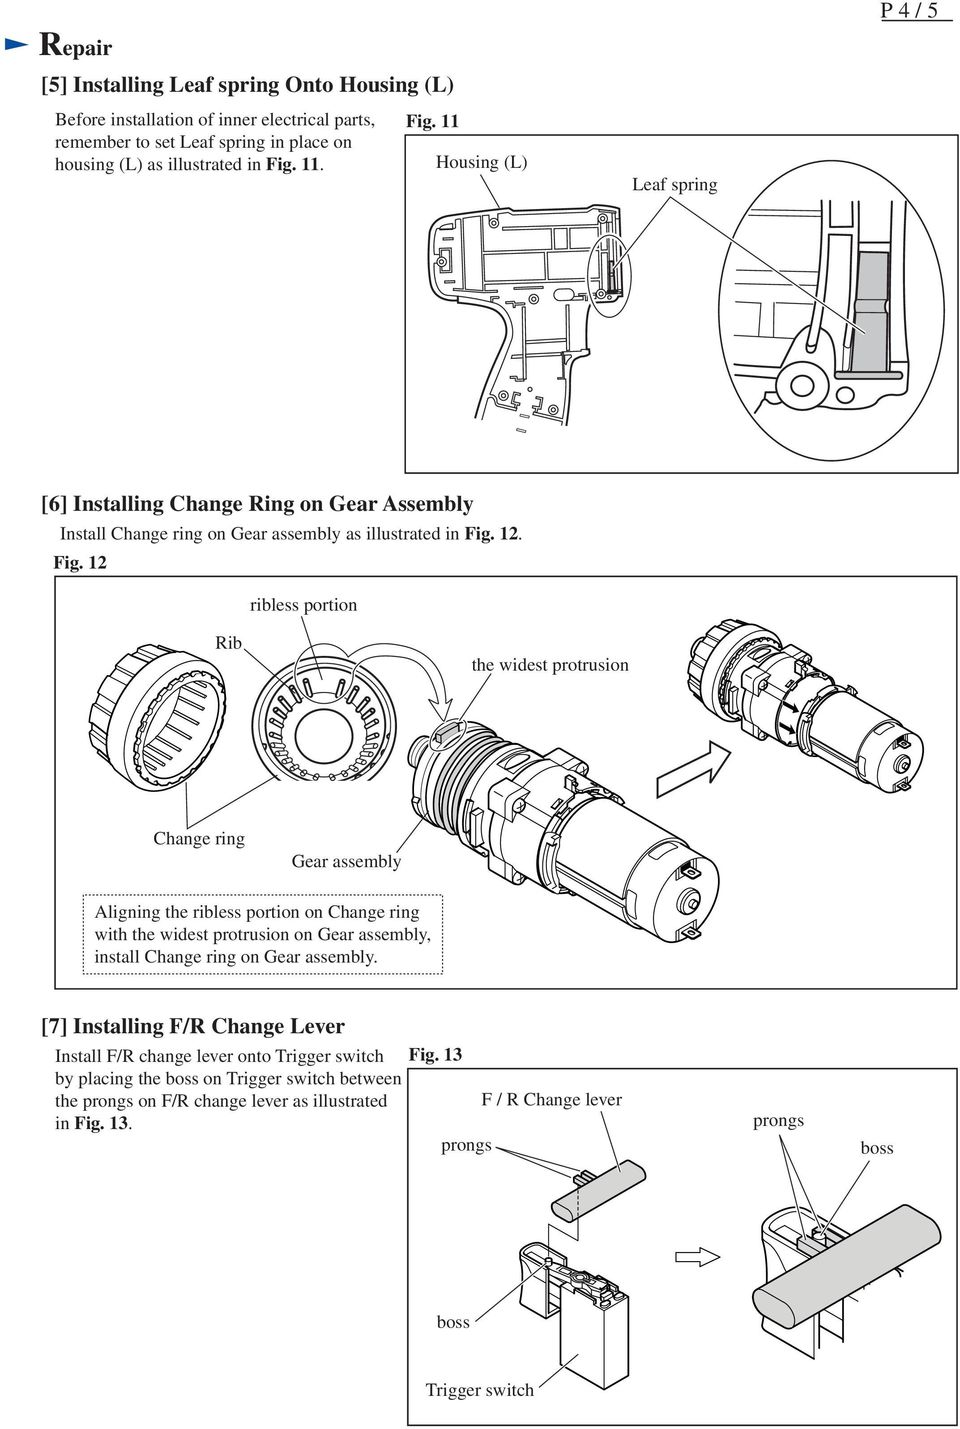 [7] Installing F/R Change Lever Install F/R change lever onto Trigger switch by placing the boss on Trigger switch between the prongs on F/R change lever as illustrated in Fig.